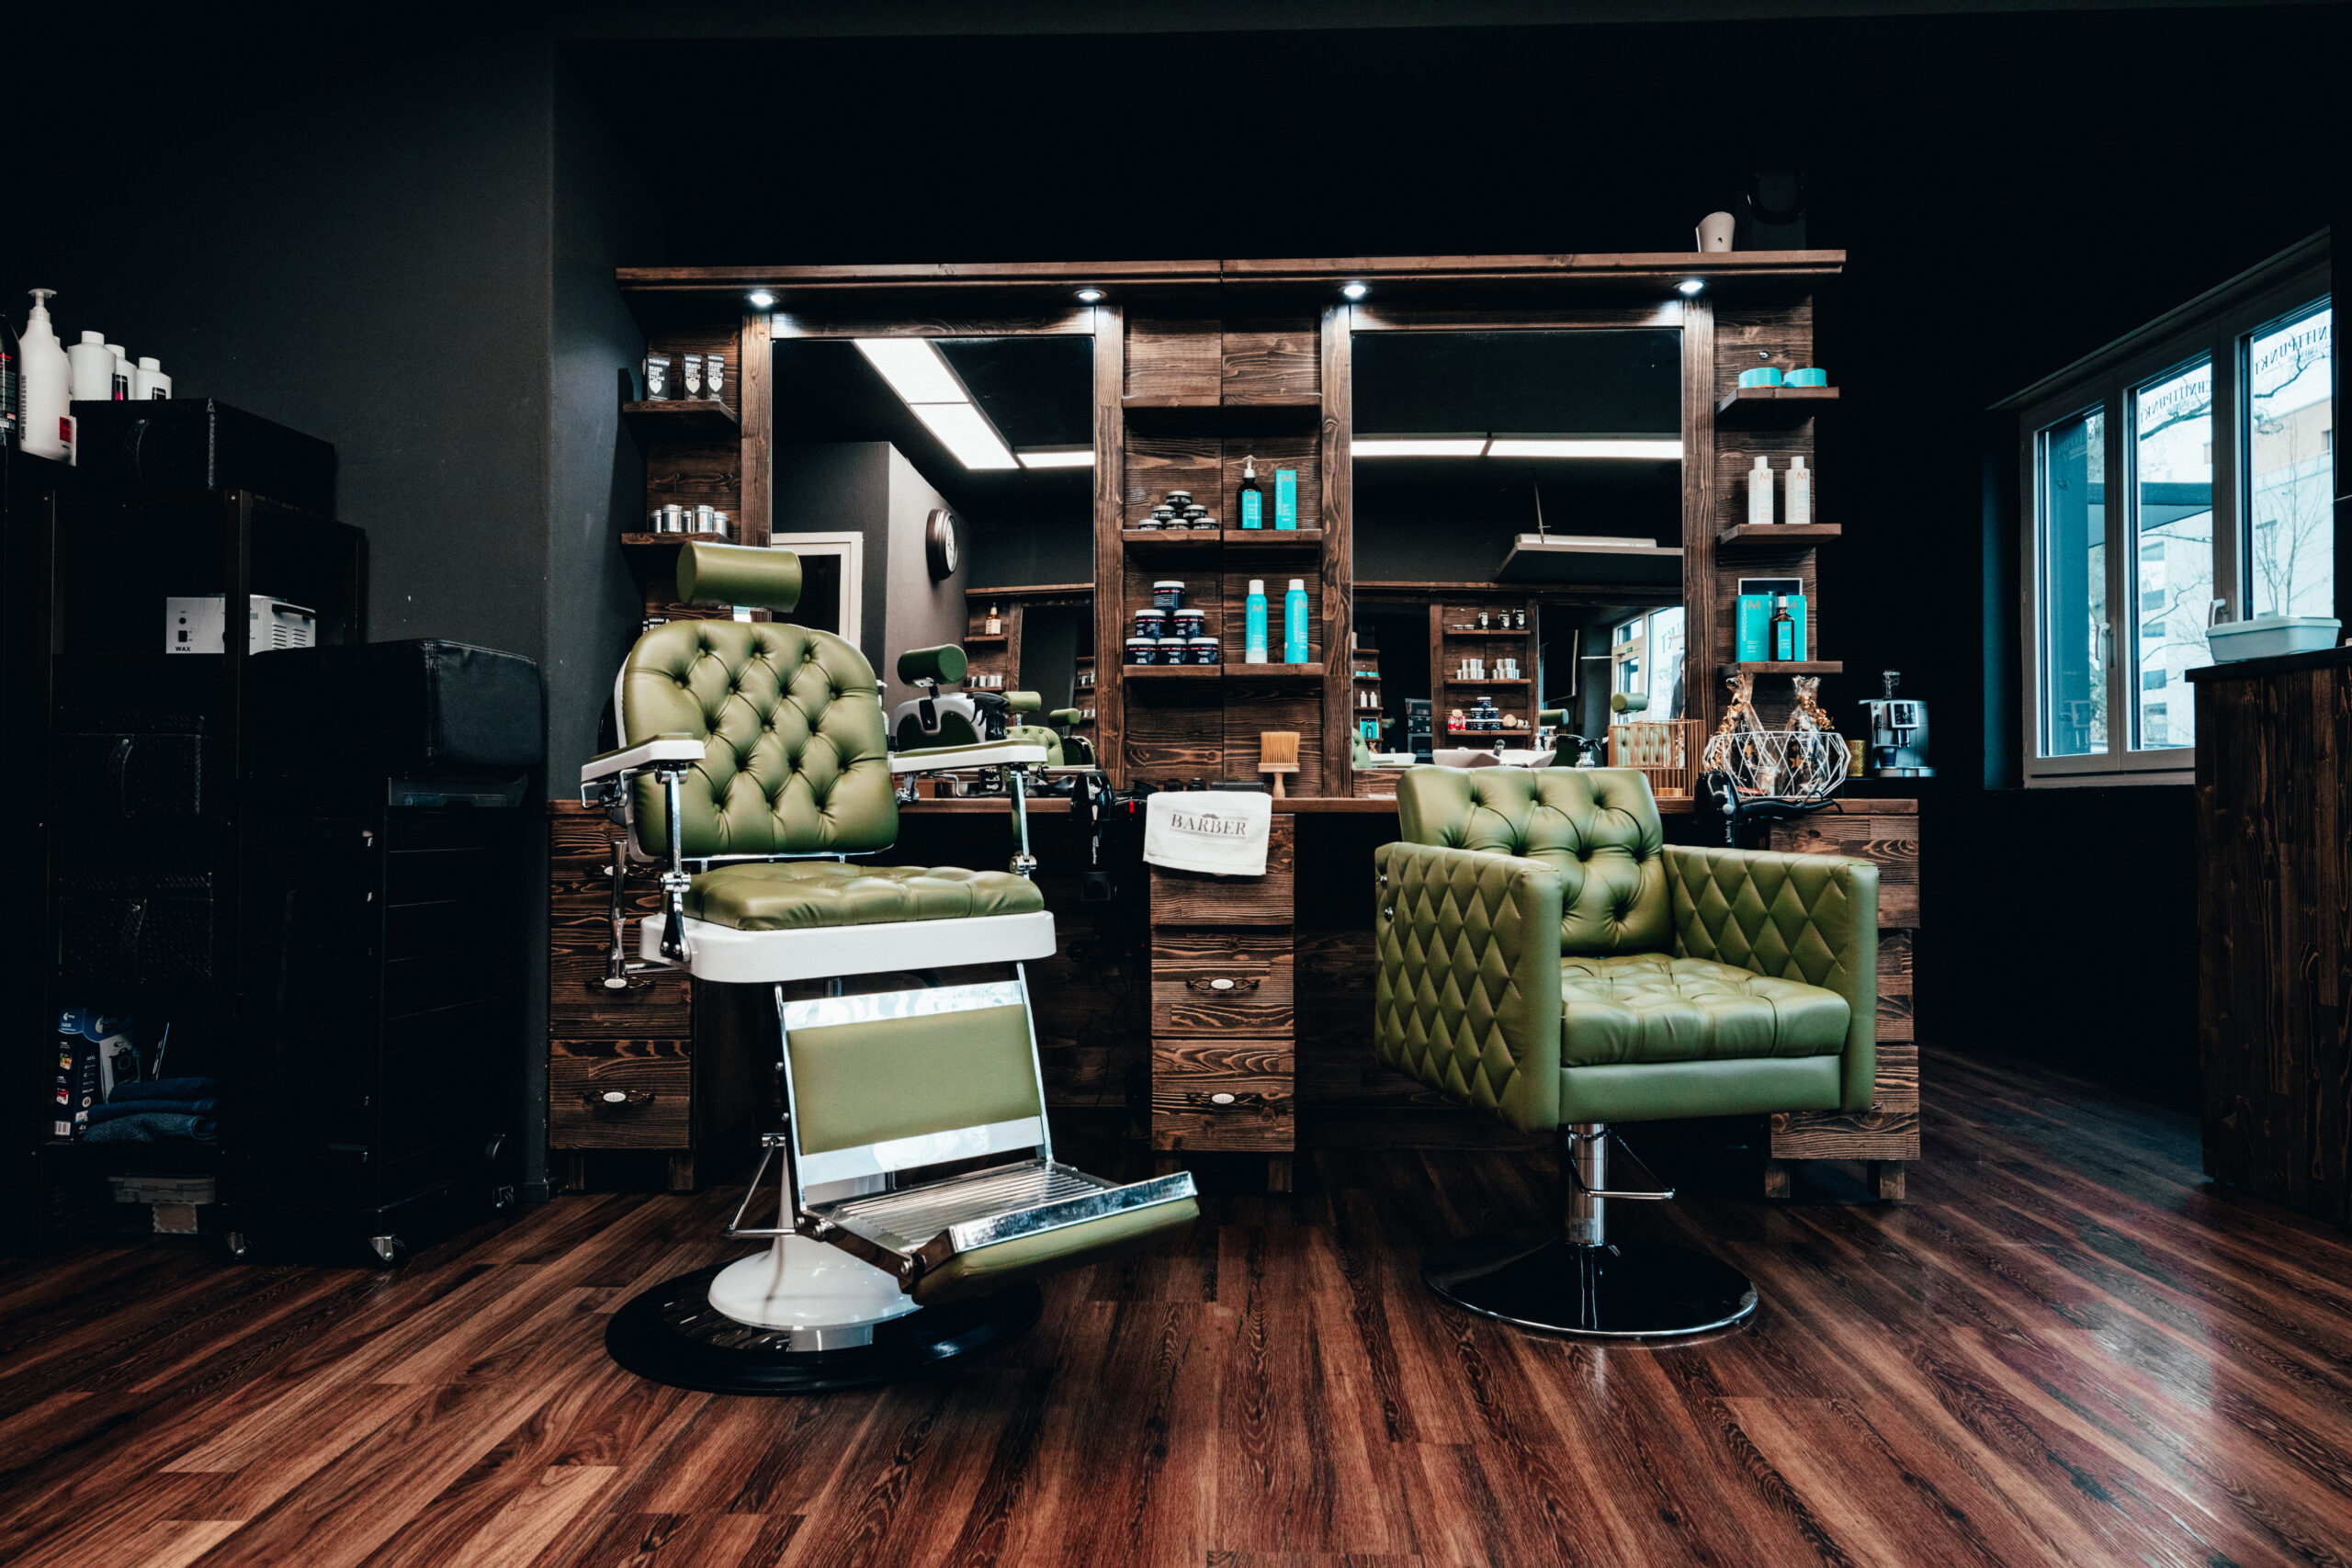 barber shop coiffeur inside